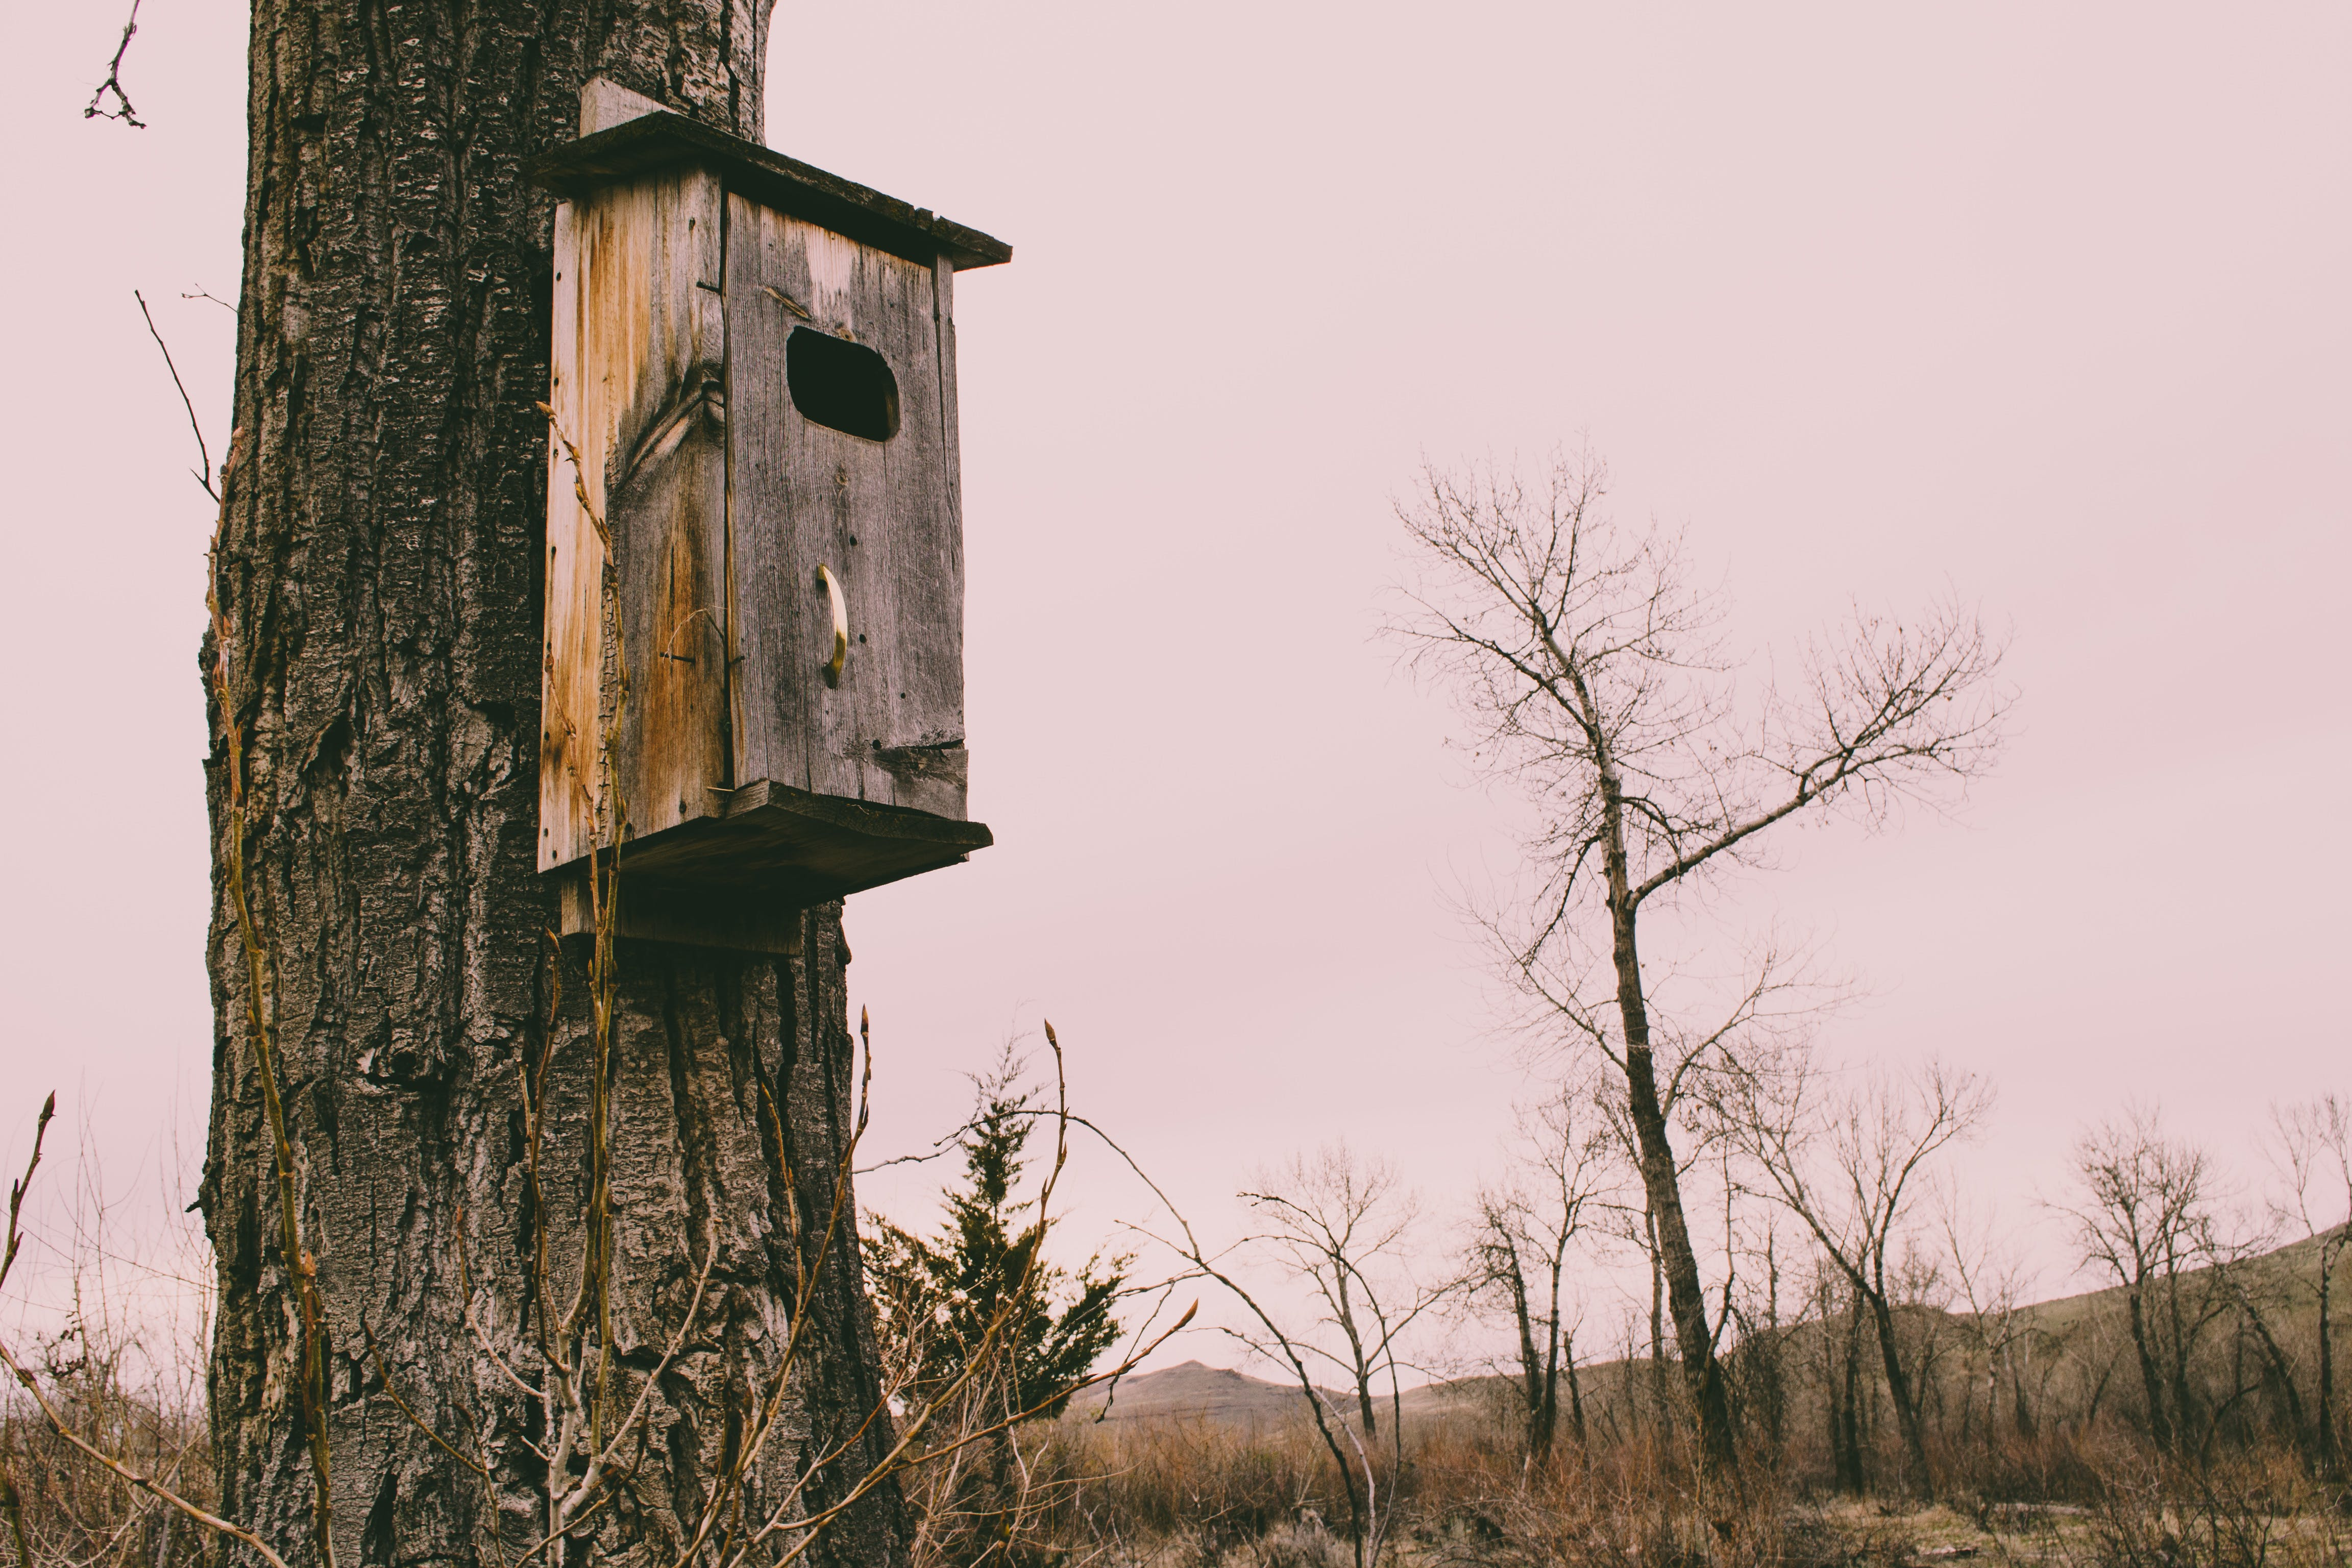 Photography of Brown Wooden Birdhouse